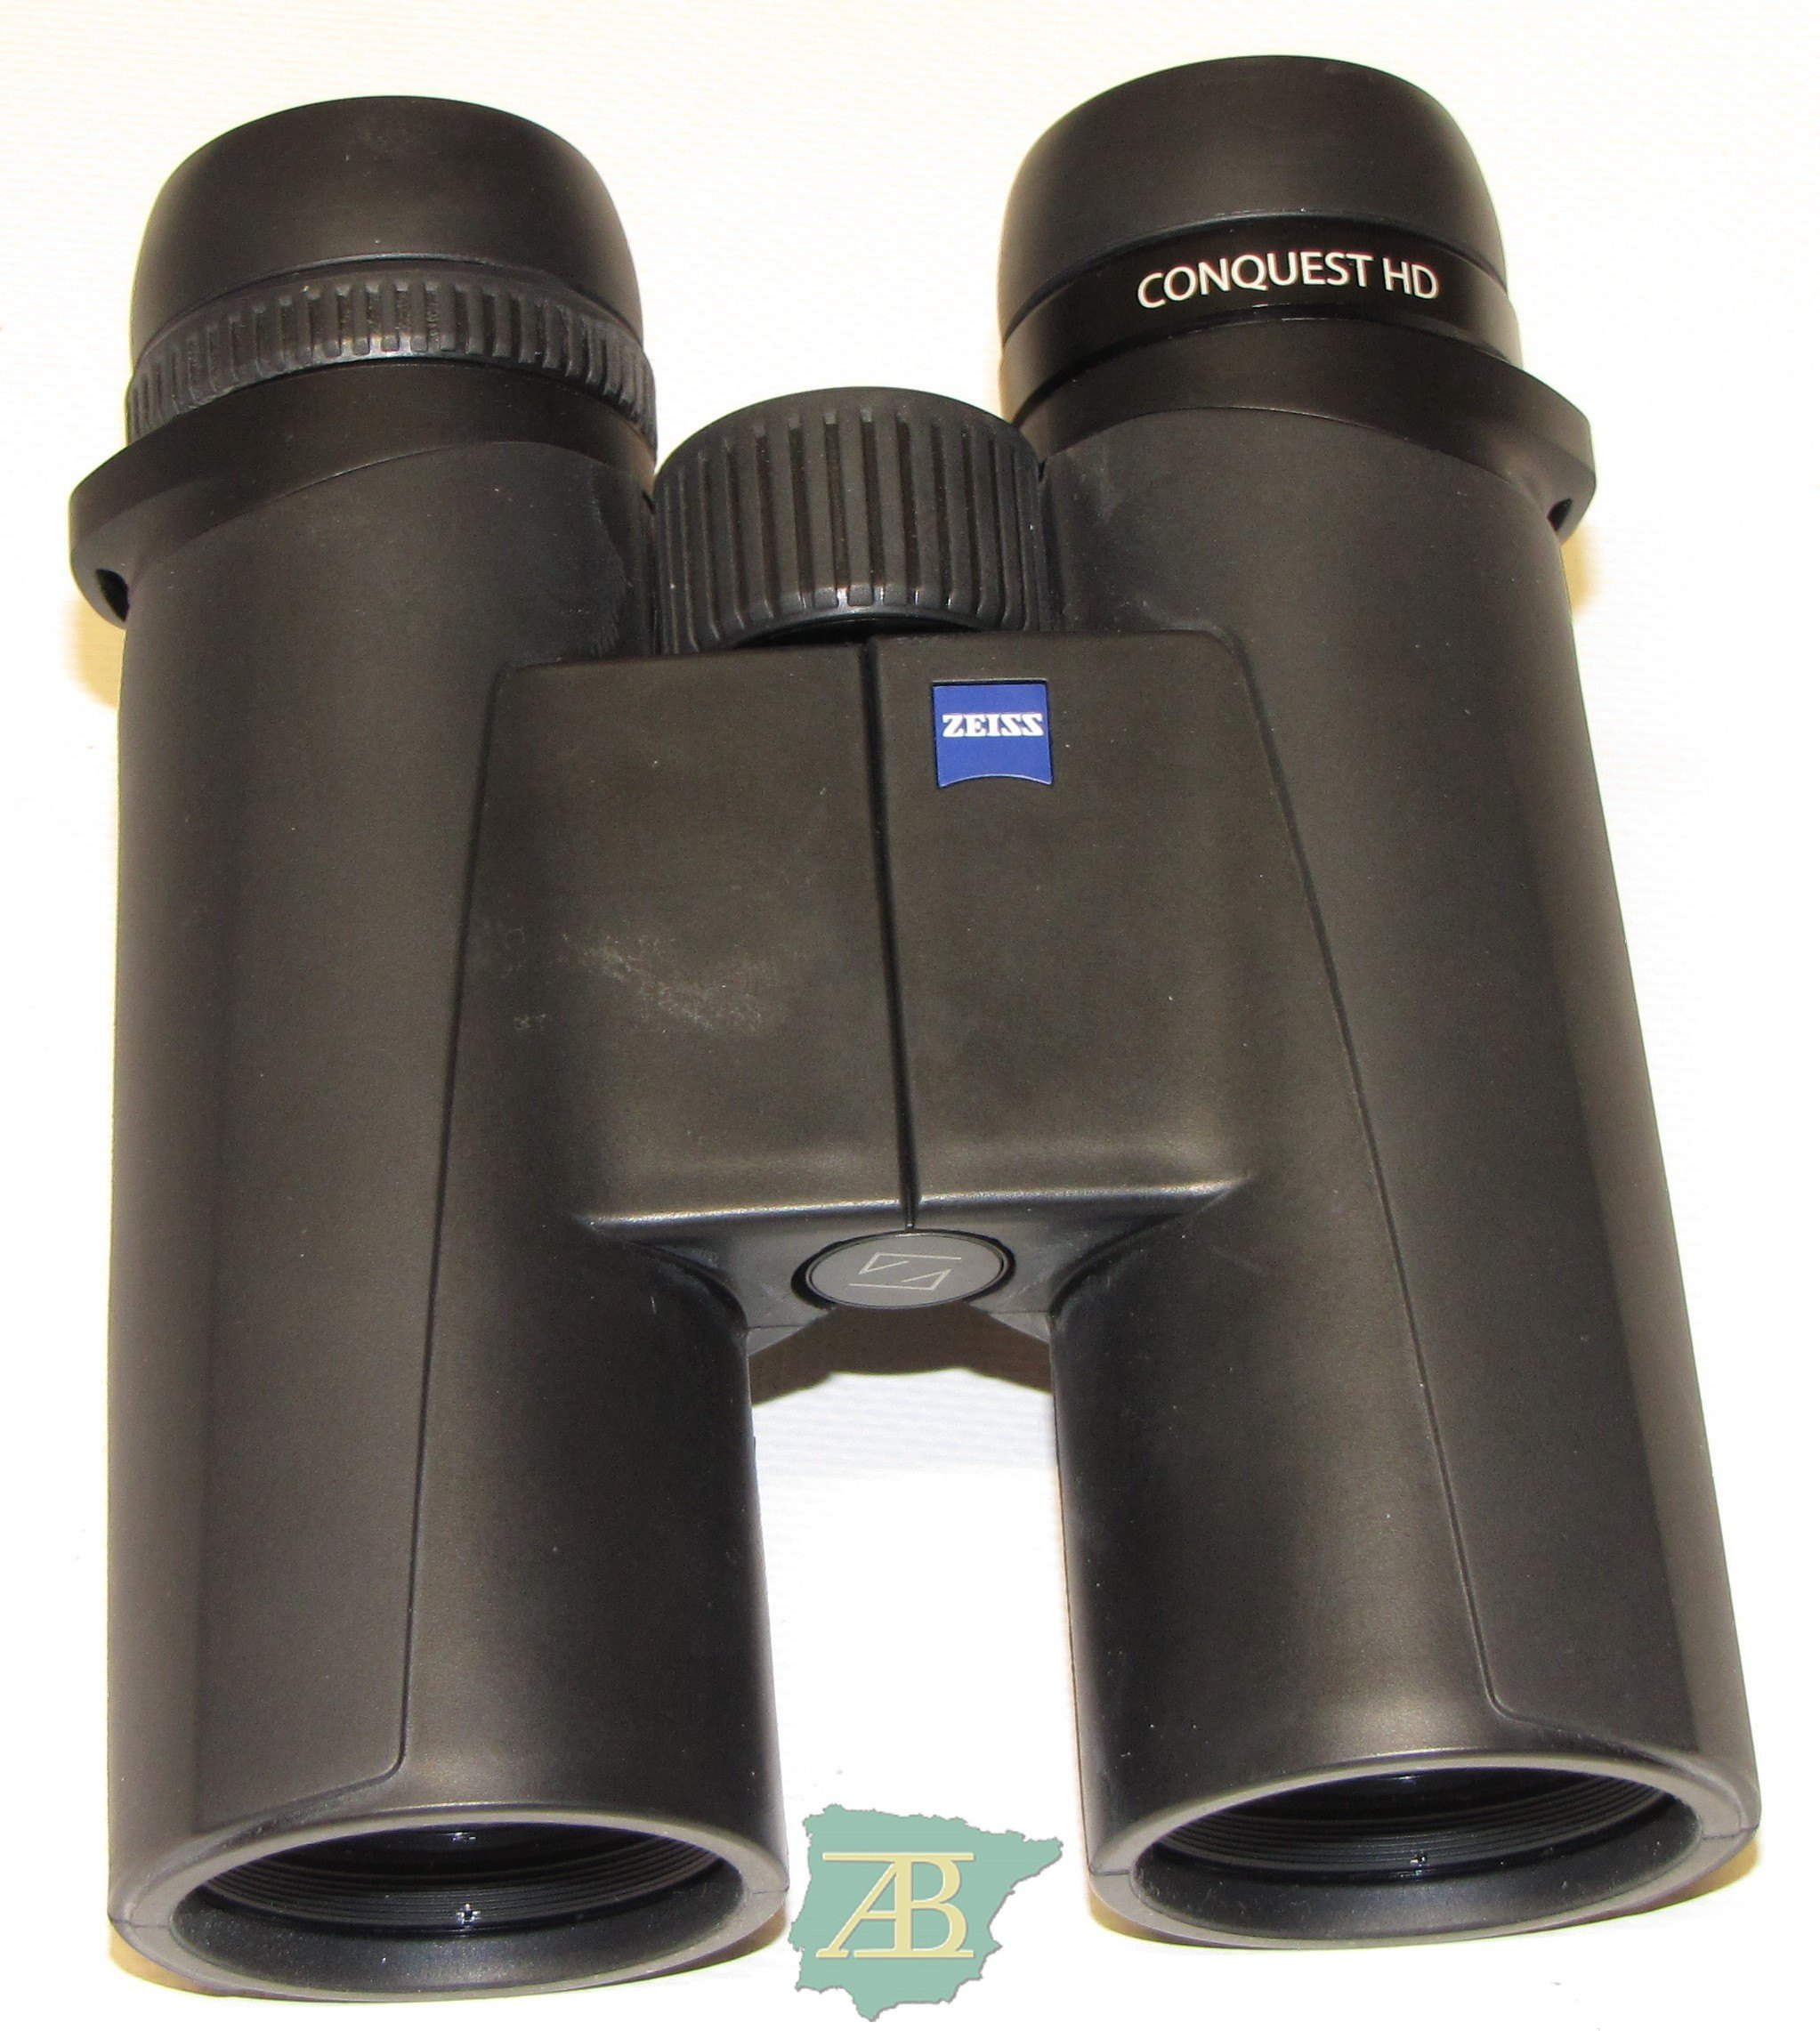 PRISMATICOS ZEISS CONQUEST HD 8X42